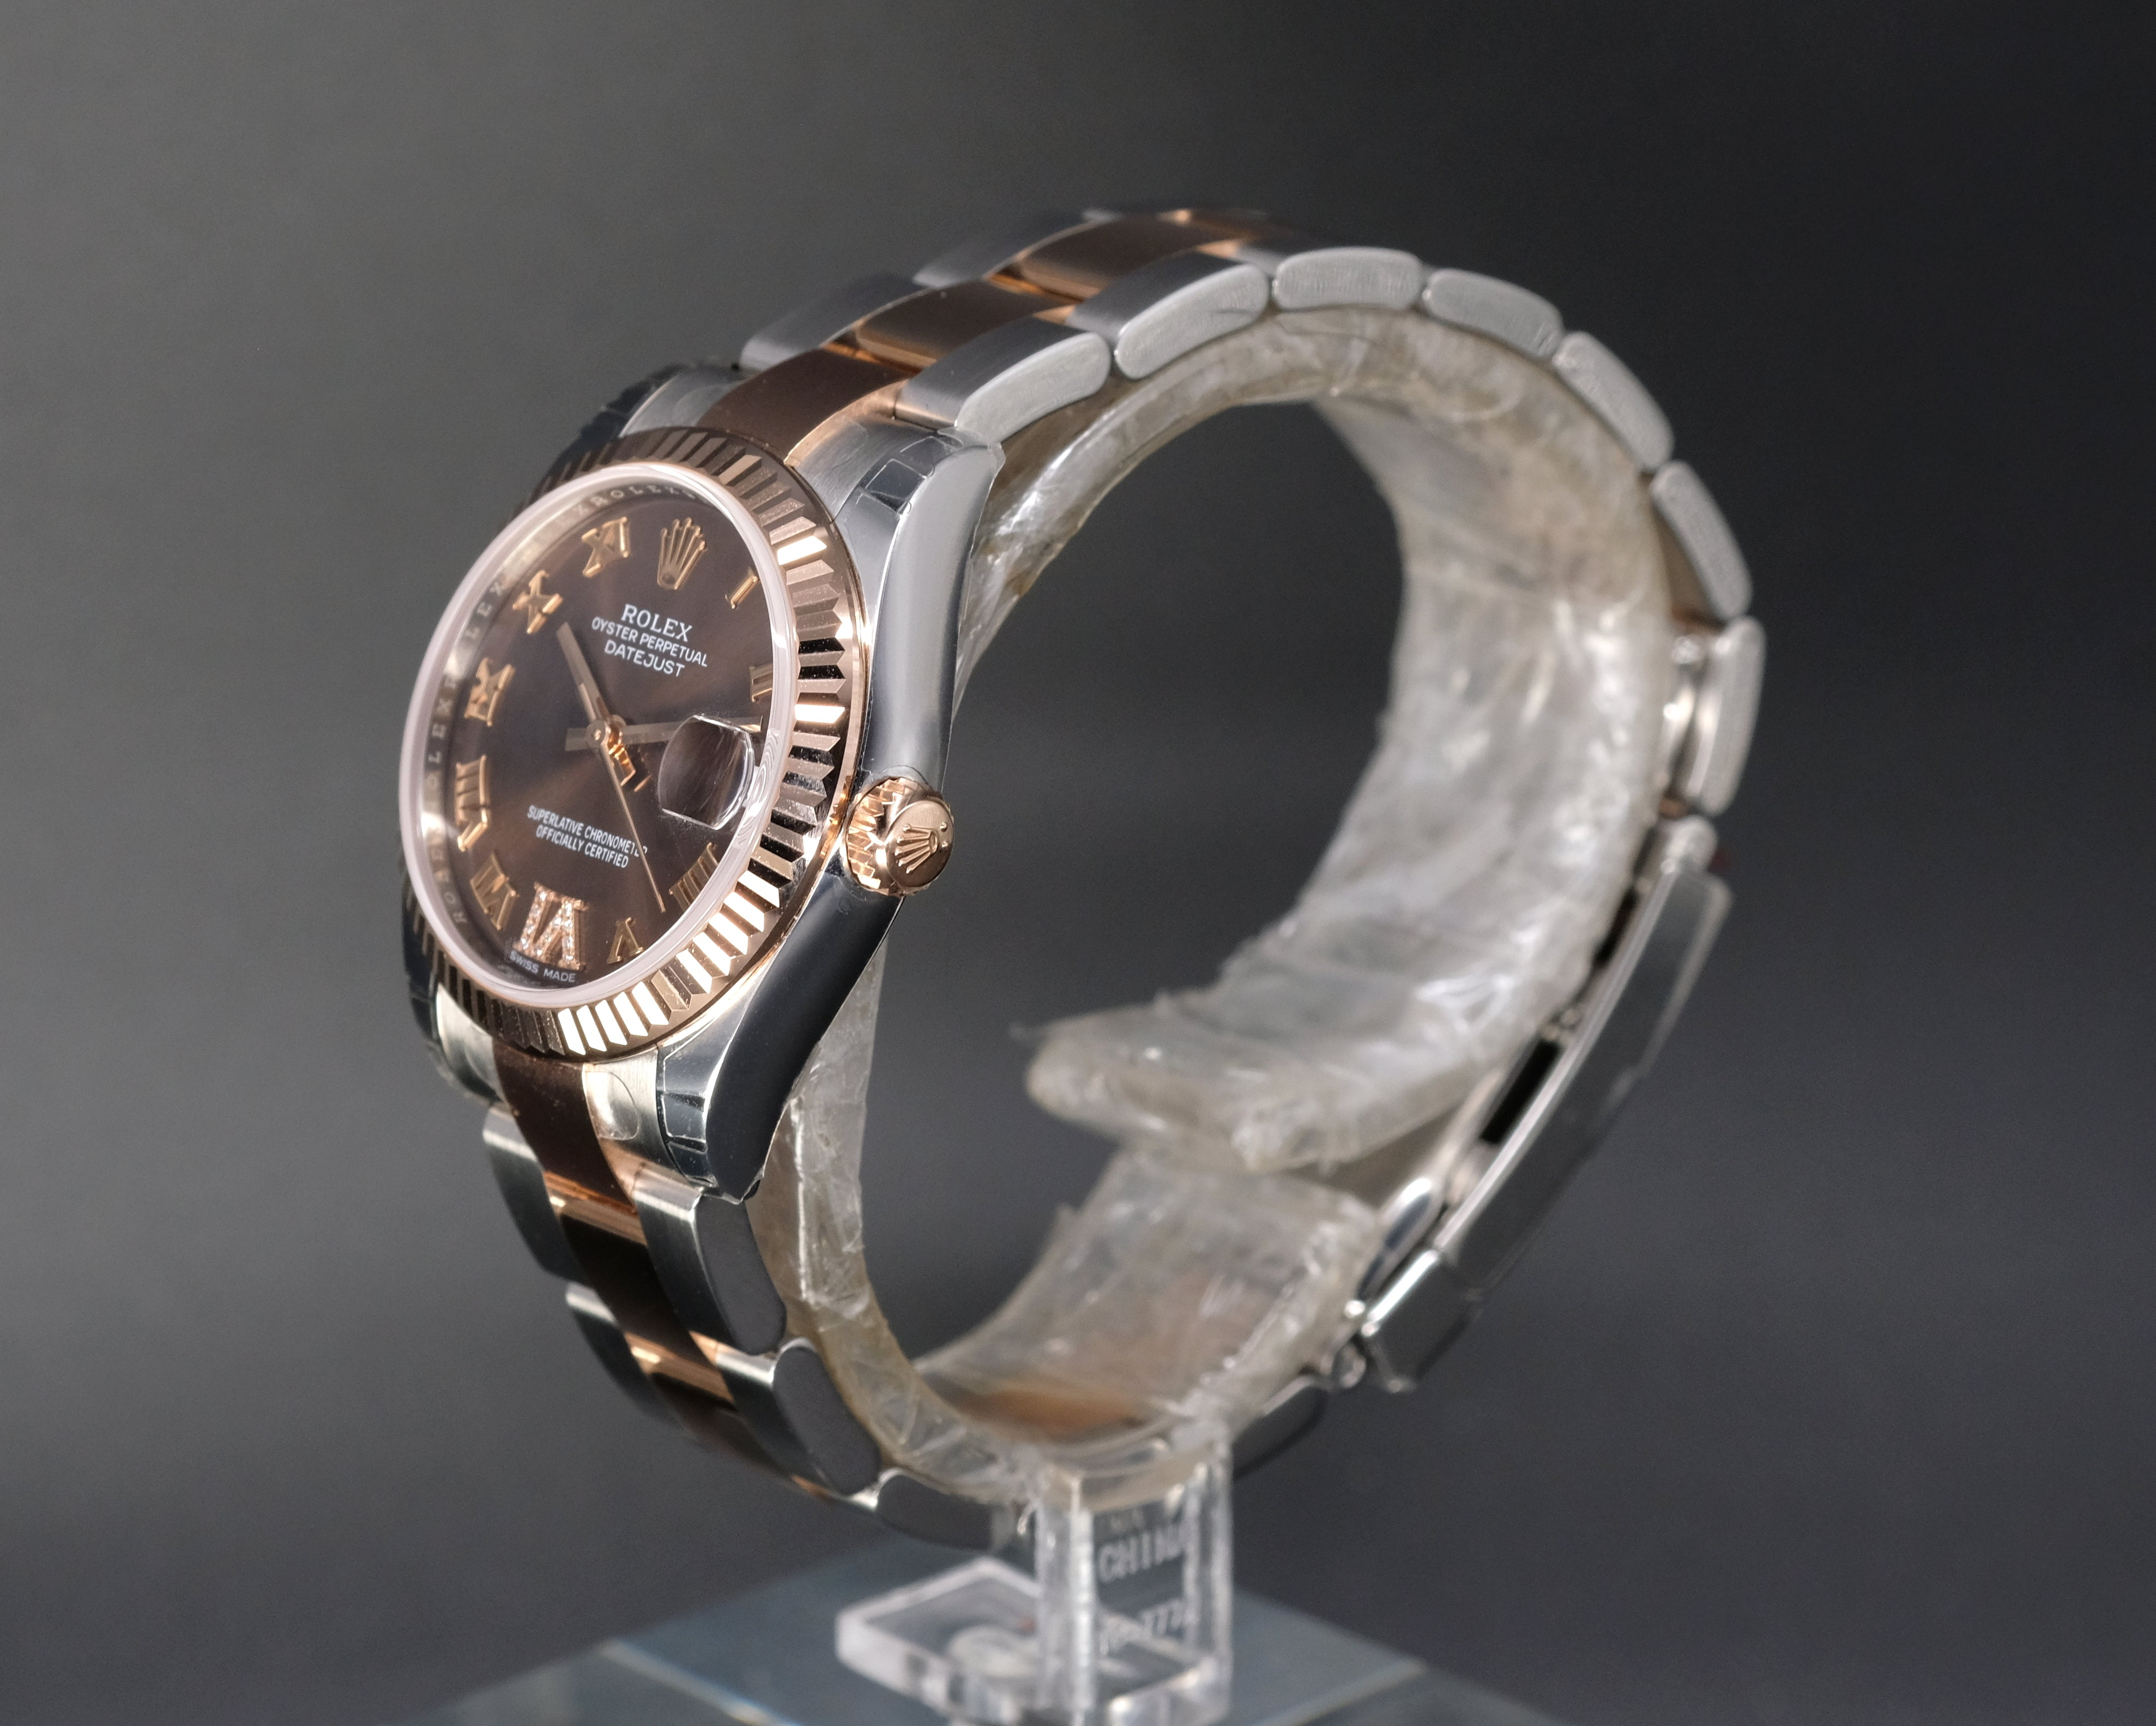 [Brand New Watch] Rolex Datejust 31mm 178271 Chocolate Dial with VI Diamonds (Oyster Bracelet)